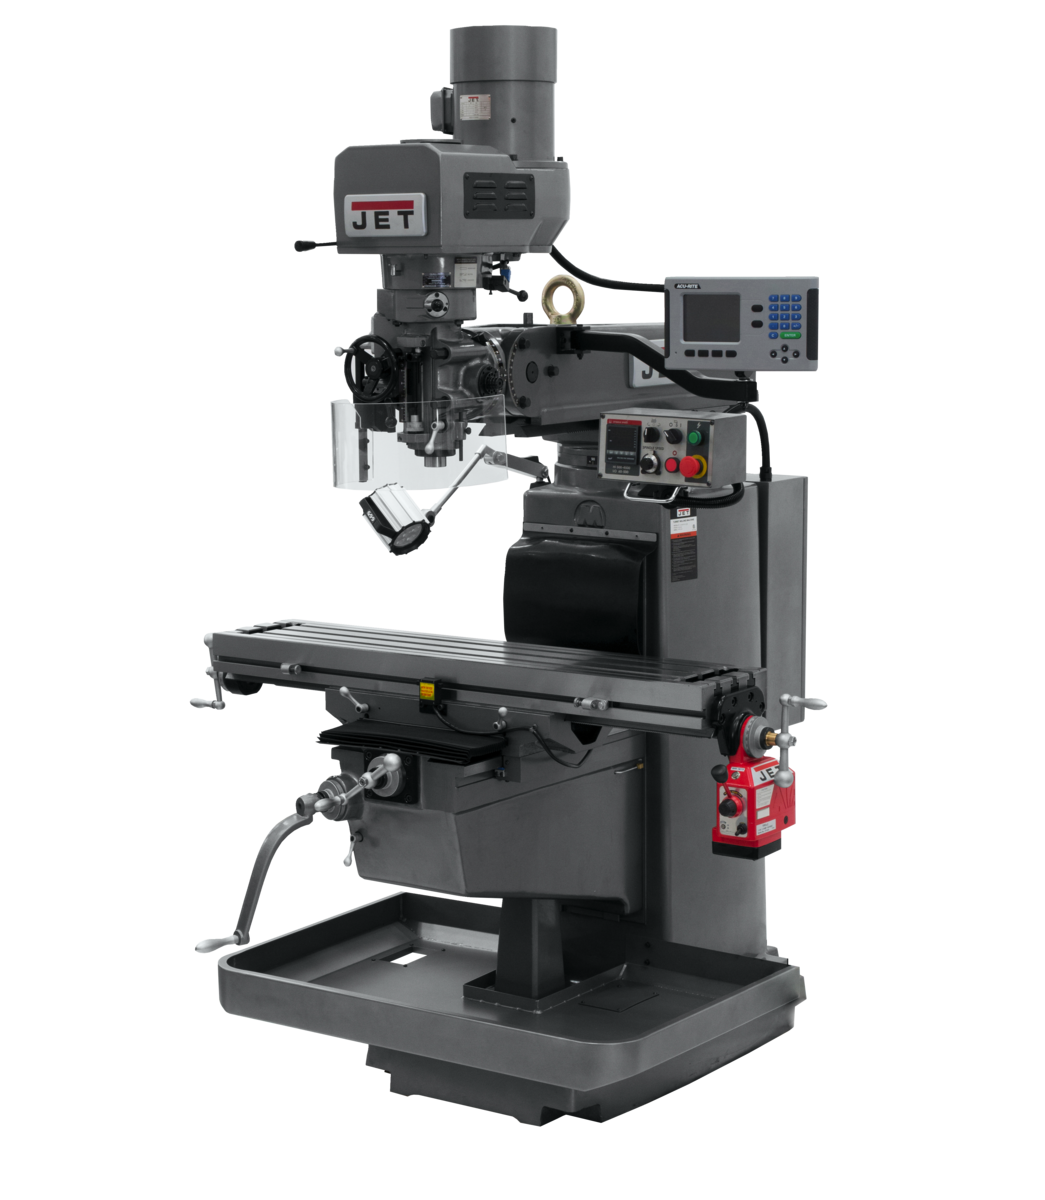 JTM-1050EVS2/230 Mill With 3-Axis Acu-Rite 203 DRO (Knee) With X-Axis Powerfeed